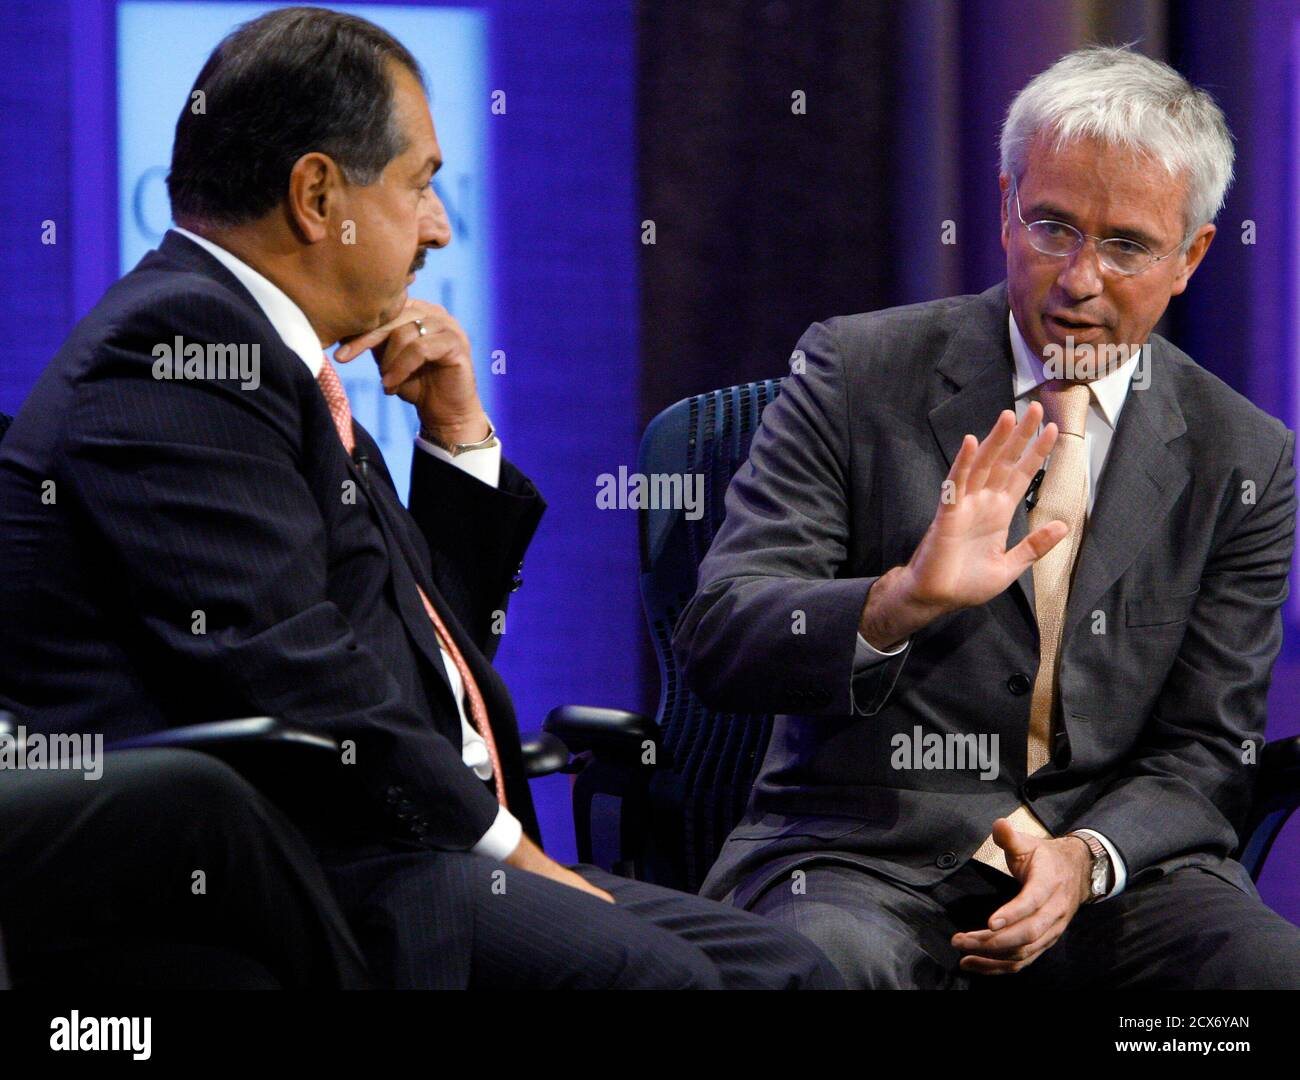 """Andrew Liveris (L), Chairman and Chief Executive Officer of The Dow Chemical Company, listens as Peter Sands, Group Chief Executive for Standard Chartered Bank, speaks with television reporter Maria Bartiromo of CNBC (not pictured) during the taping of a program titled """"Meeting of the Minds,"""" at the Clinton Global Initiative in New York September 22, 2010.  REUTERS/Chip East (UNITED STATES - Tags: POLITICS BUSINESS SOCIETY) Stock Photo"""